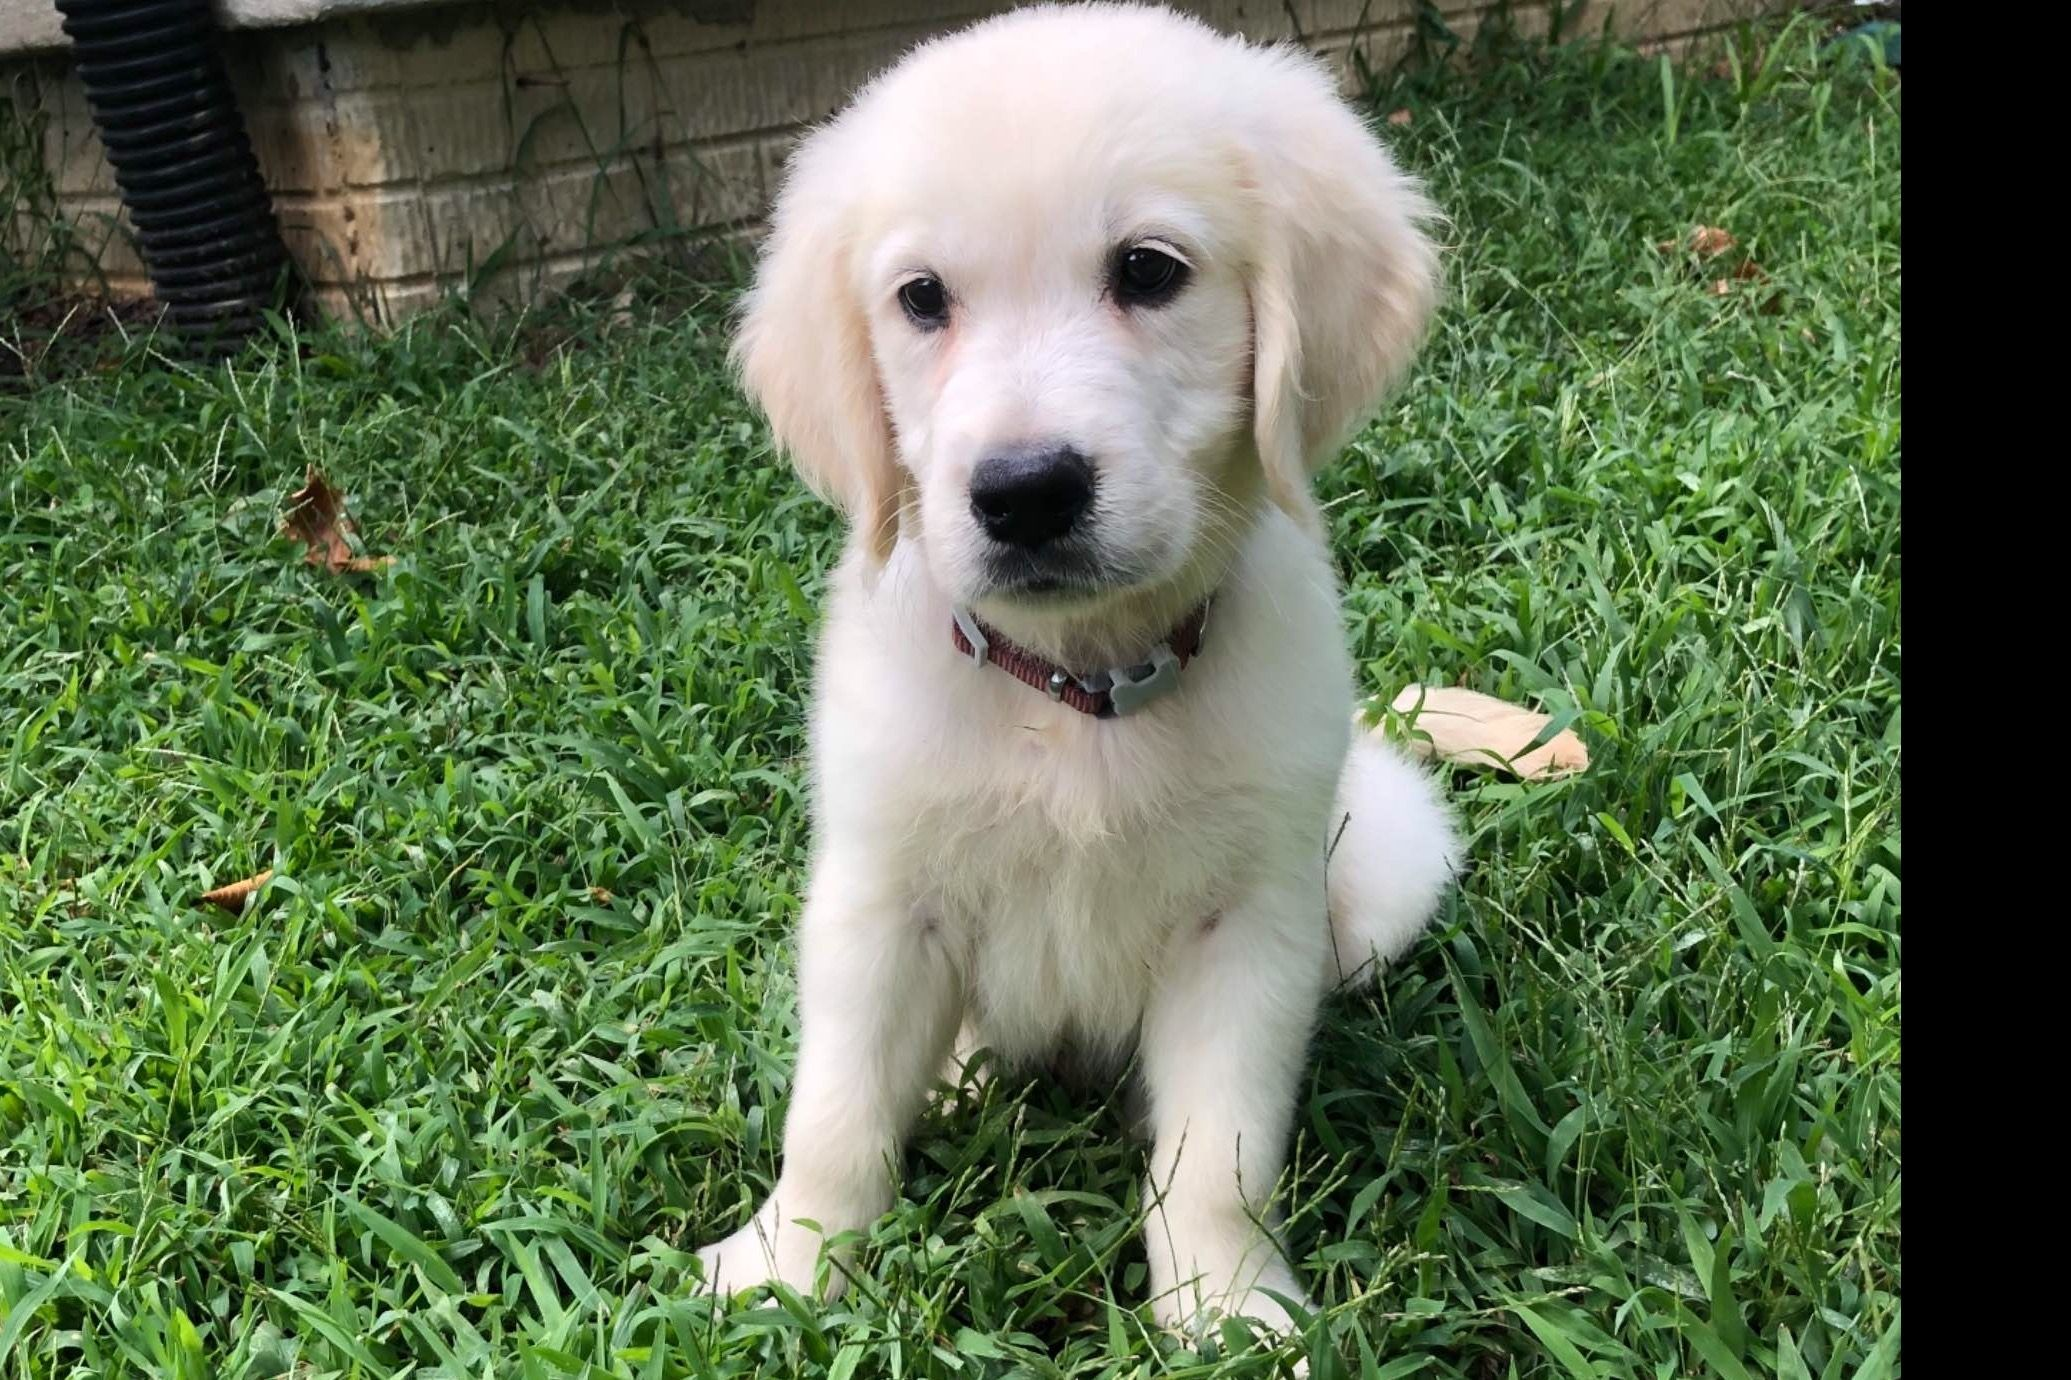 Storybrooke Golden S Has Golden Retriever Puppies For Sale In Stafford Va On Akc Puppyfinder Golden Retriever Golden Puppy Puppies For Sale